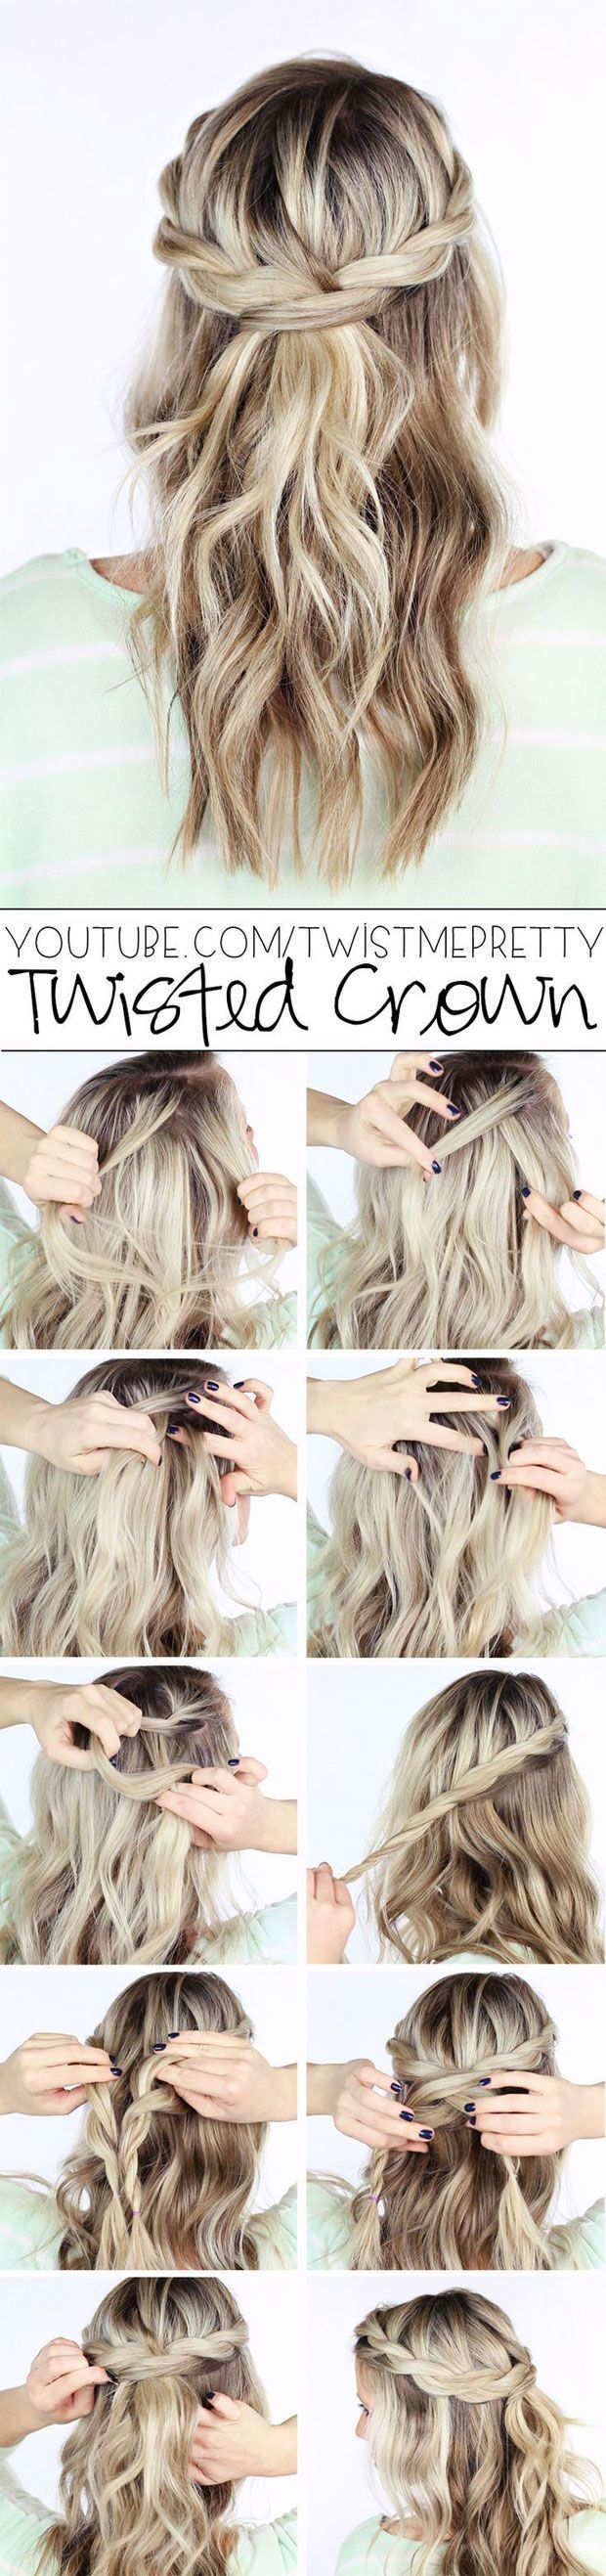 Boho braid crown: This gorgeous half-up style incorporates twisted braids while ...